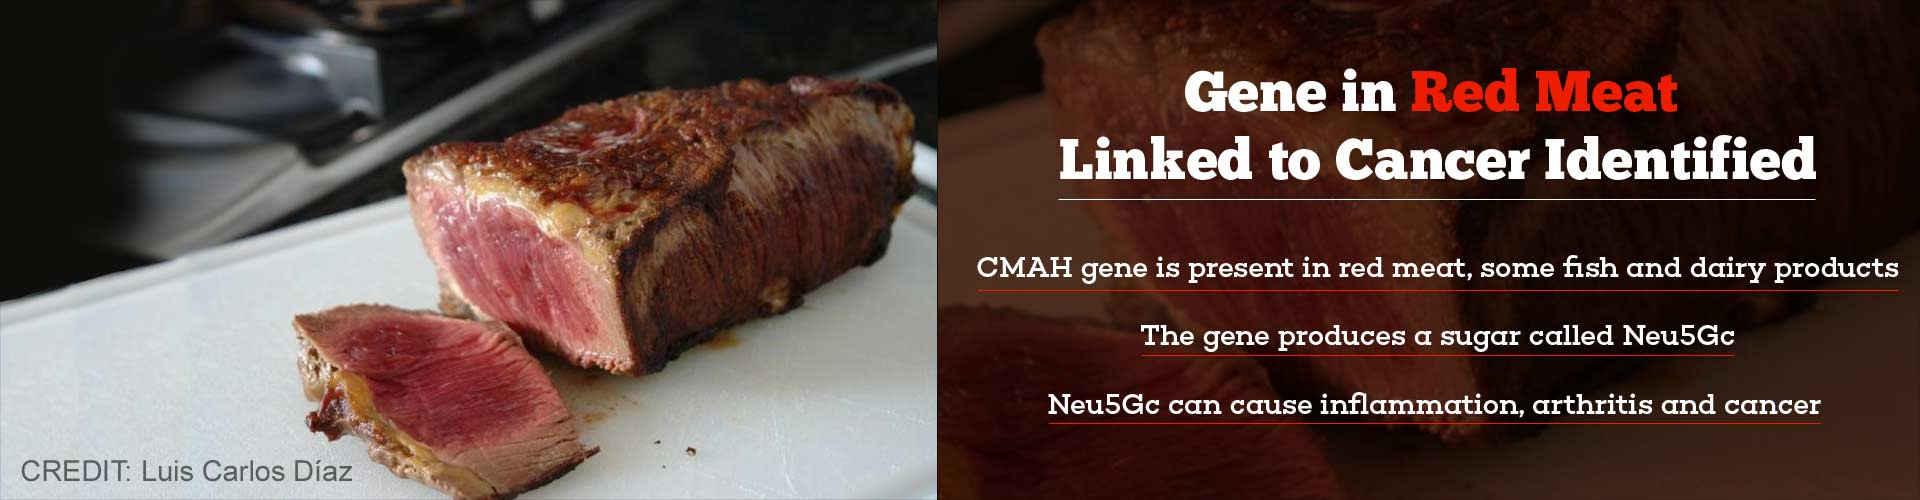 Red Meat Carries Gene That Causes Inflammation, Cancer